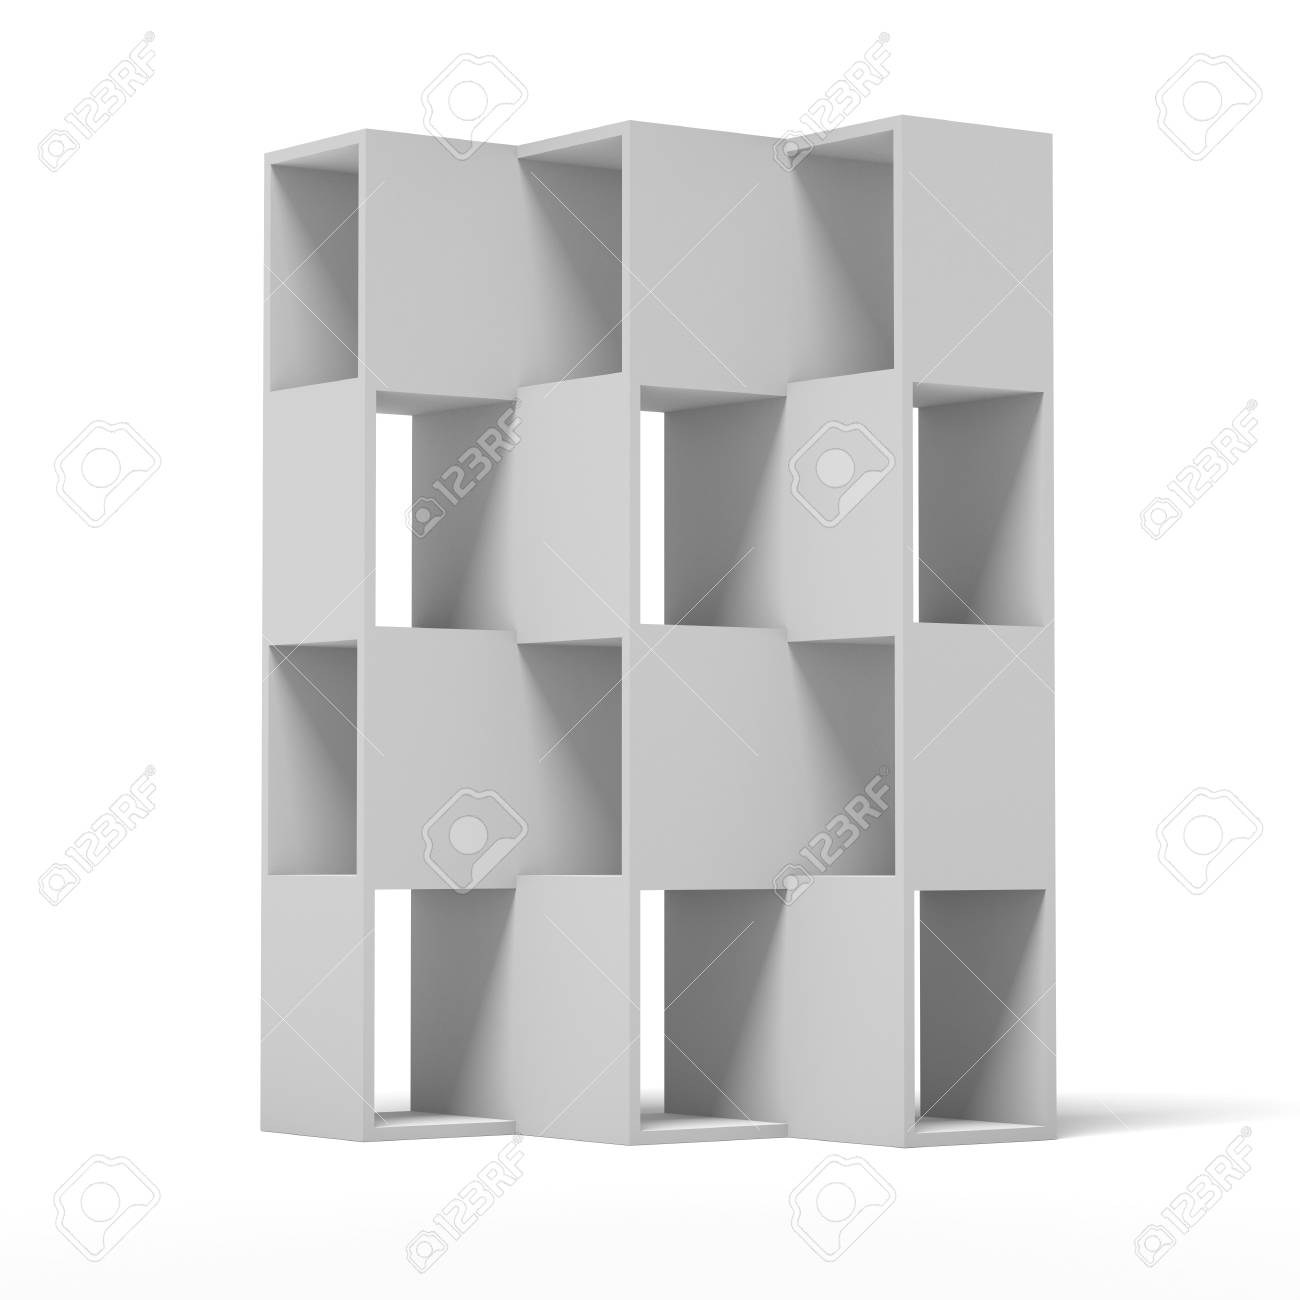 white wooden bookshelf  isolated on a white background. 3d render Stock Photo - 23440289